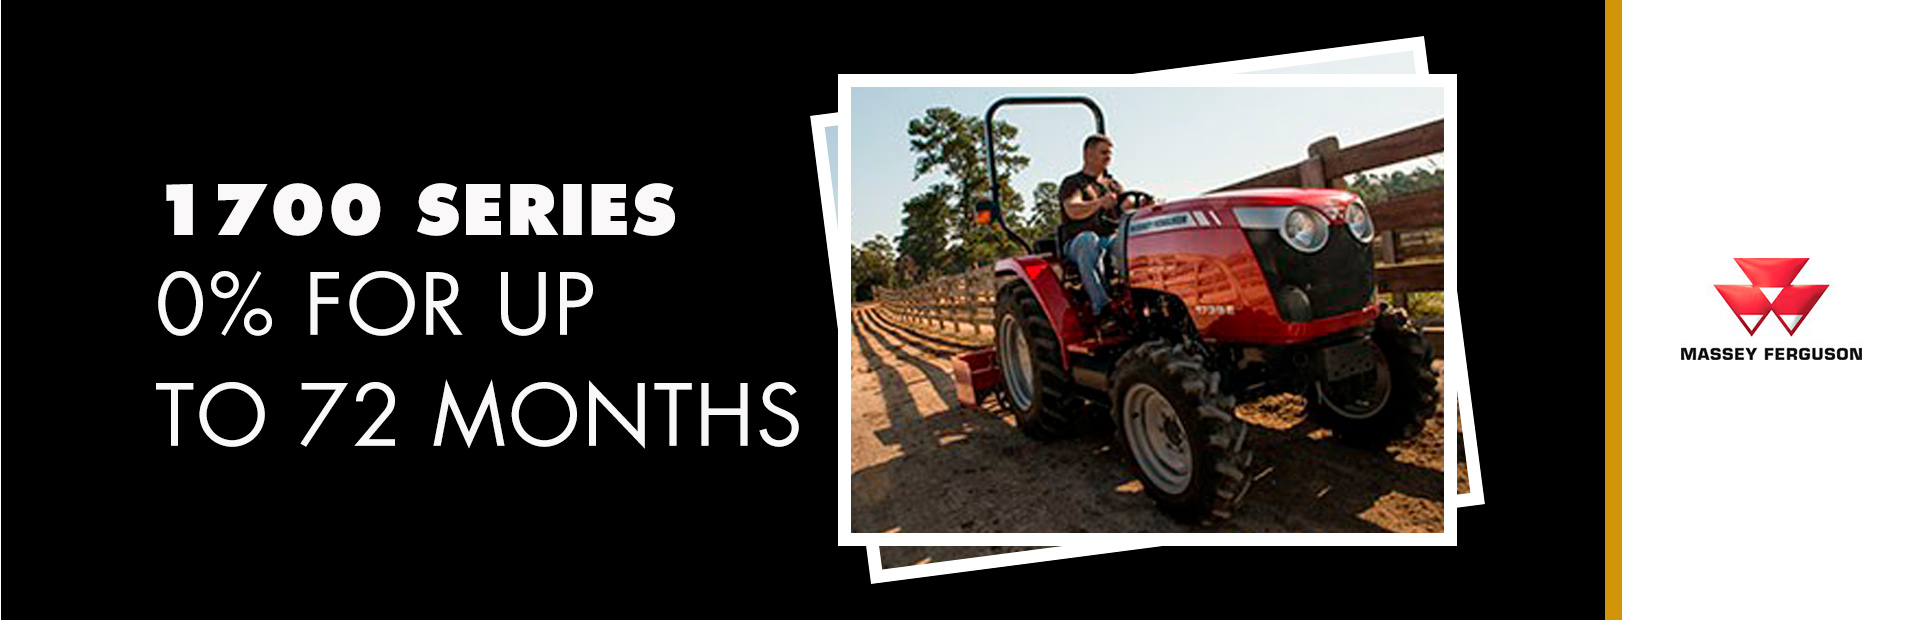 Massey Ferguson: 1700 Series Economy - 0% for up to 72 Months